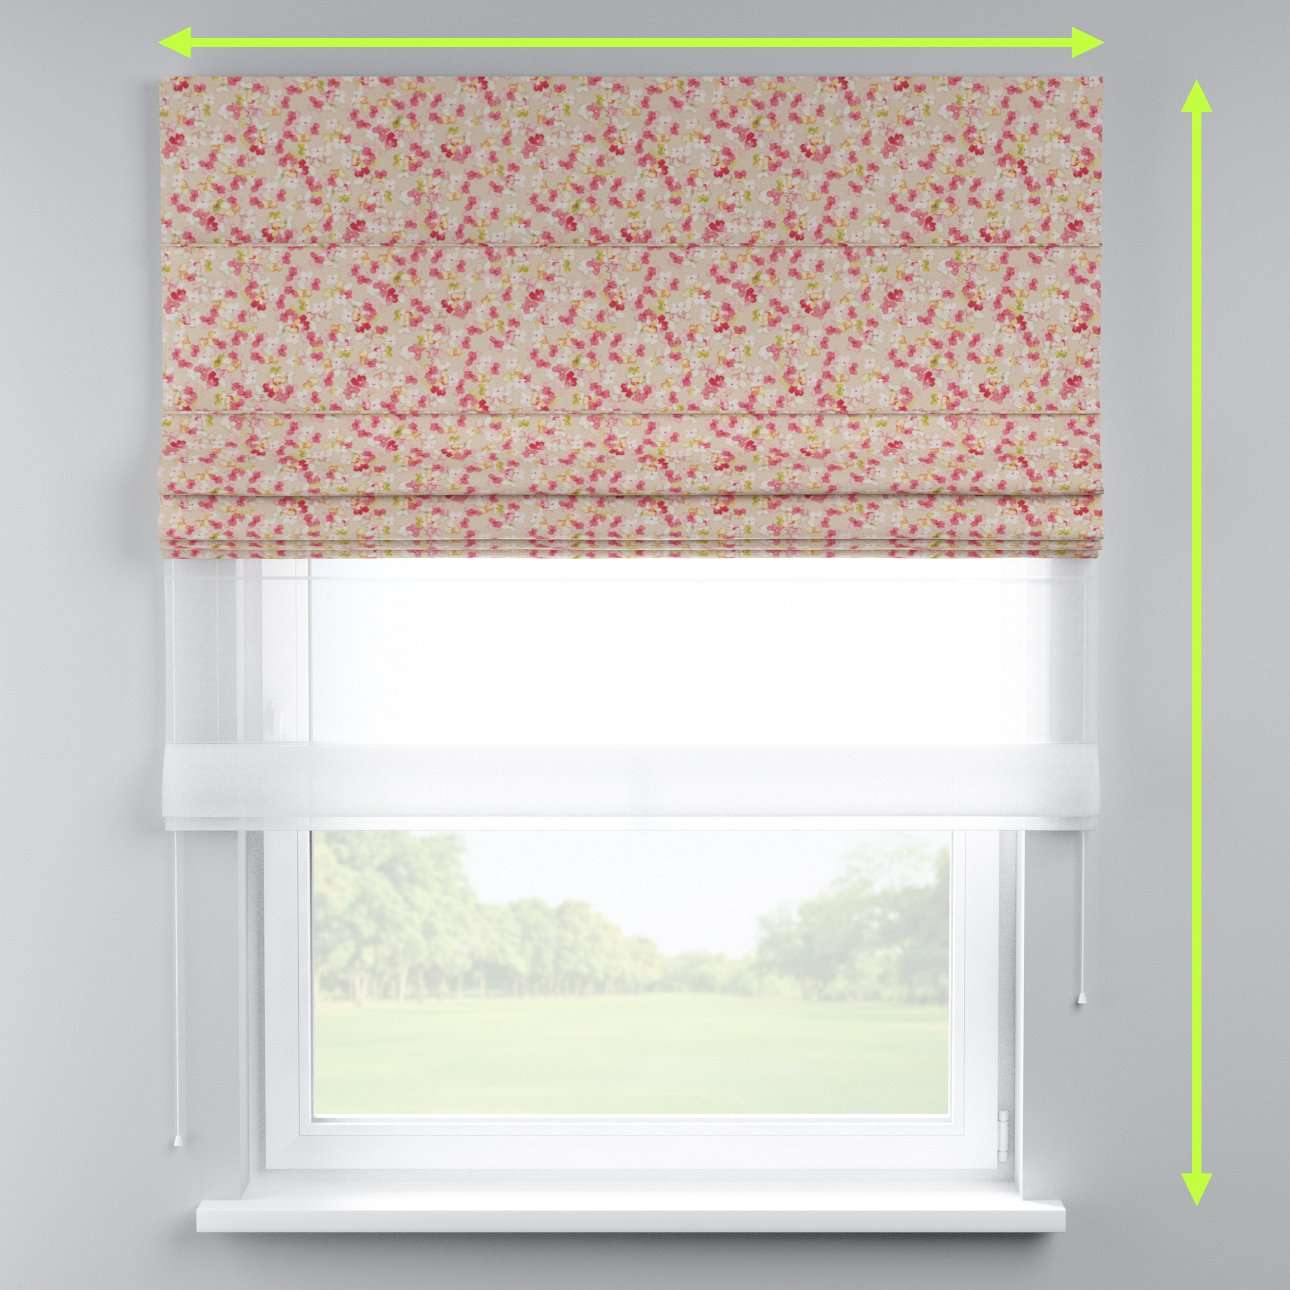 Voile and fabric roman blind (DUO II) in collection Londres, fabric: 140-47